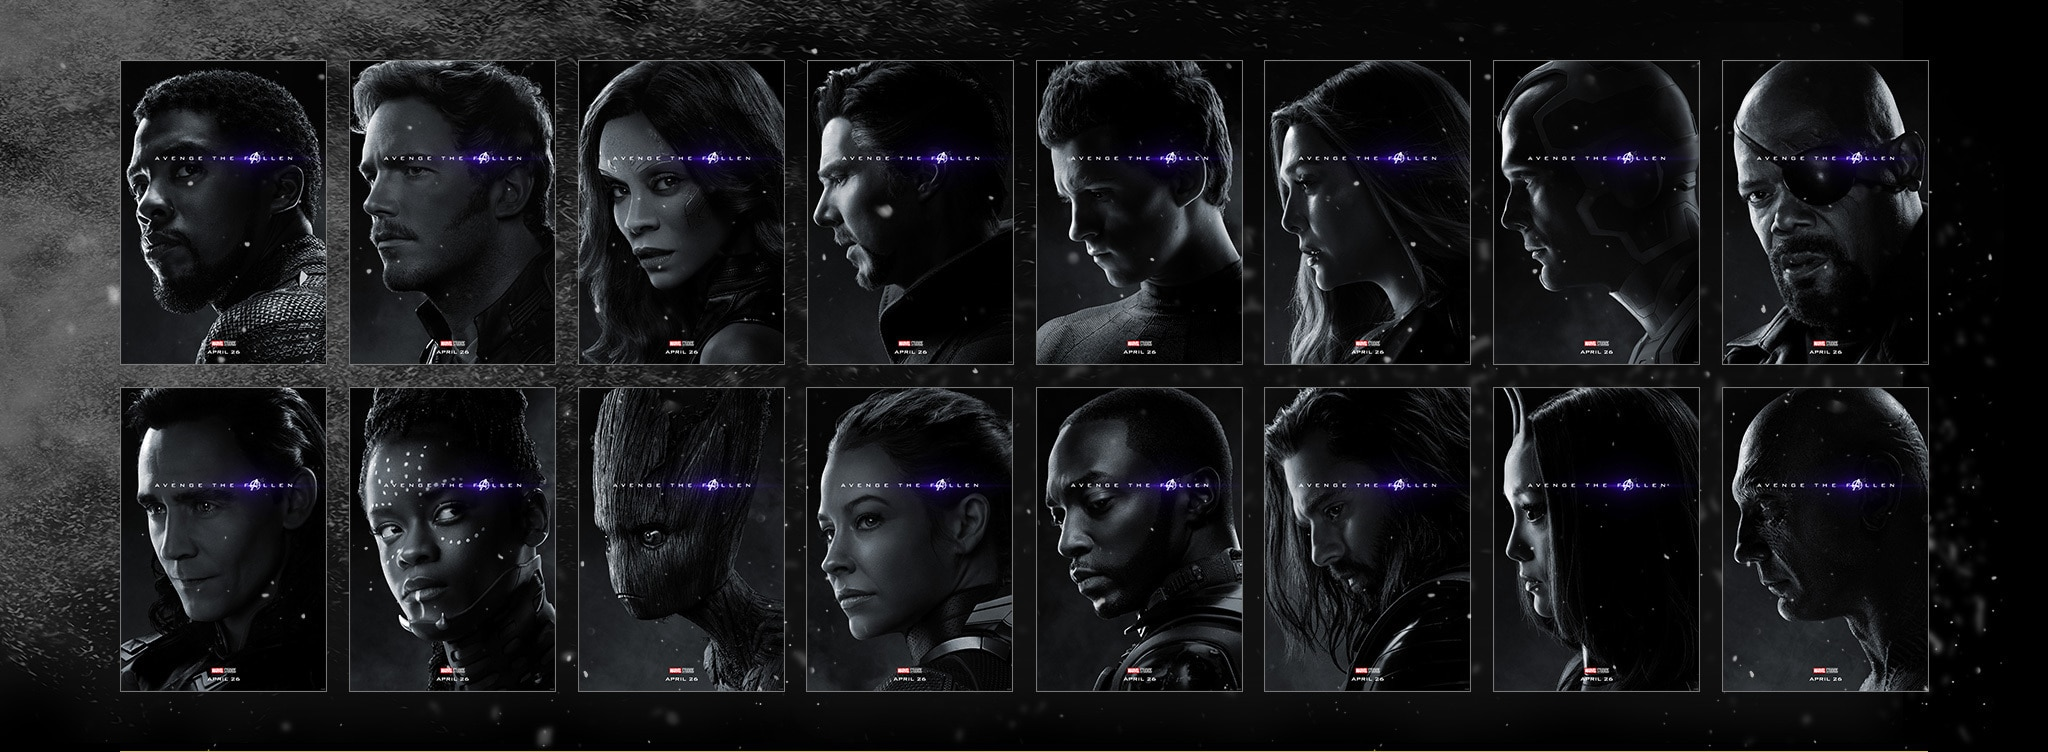 Avenge the Fallen - Marvel Studios - April 26